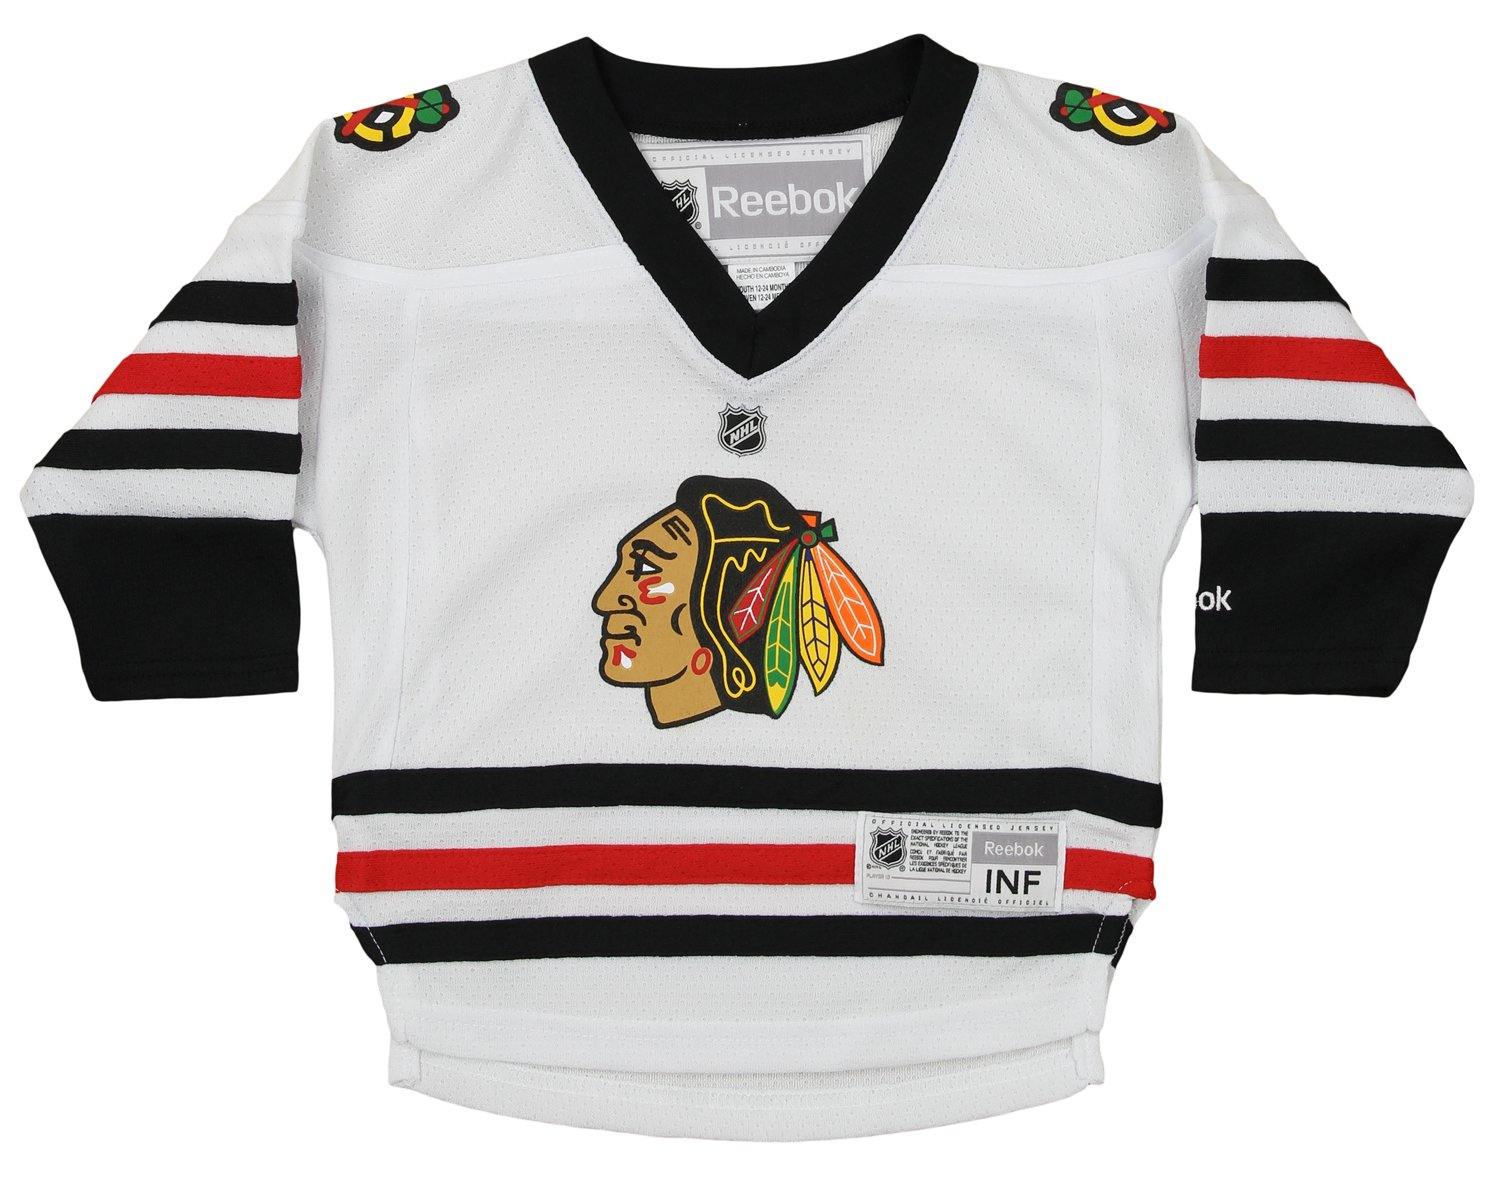 082b8e34ba9 Amazon.com : NHL Infant's Chicago Blackhawks Replica Jersey, White 12-24  Months : Sports & Outdoors